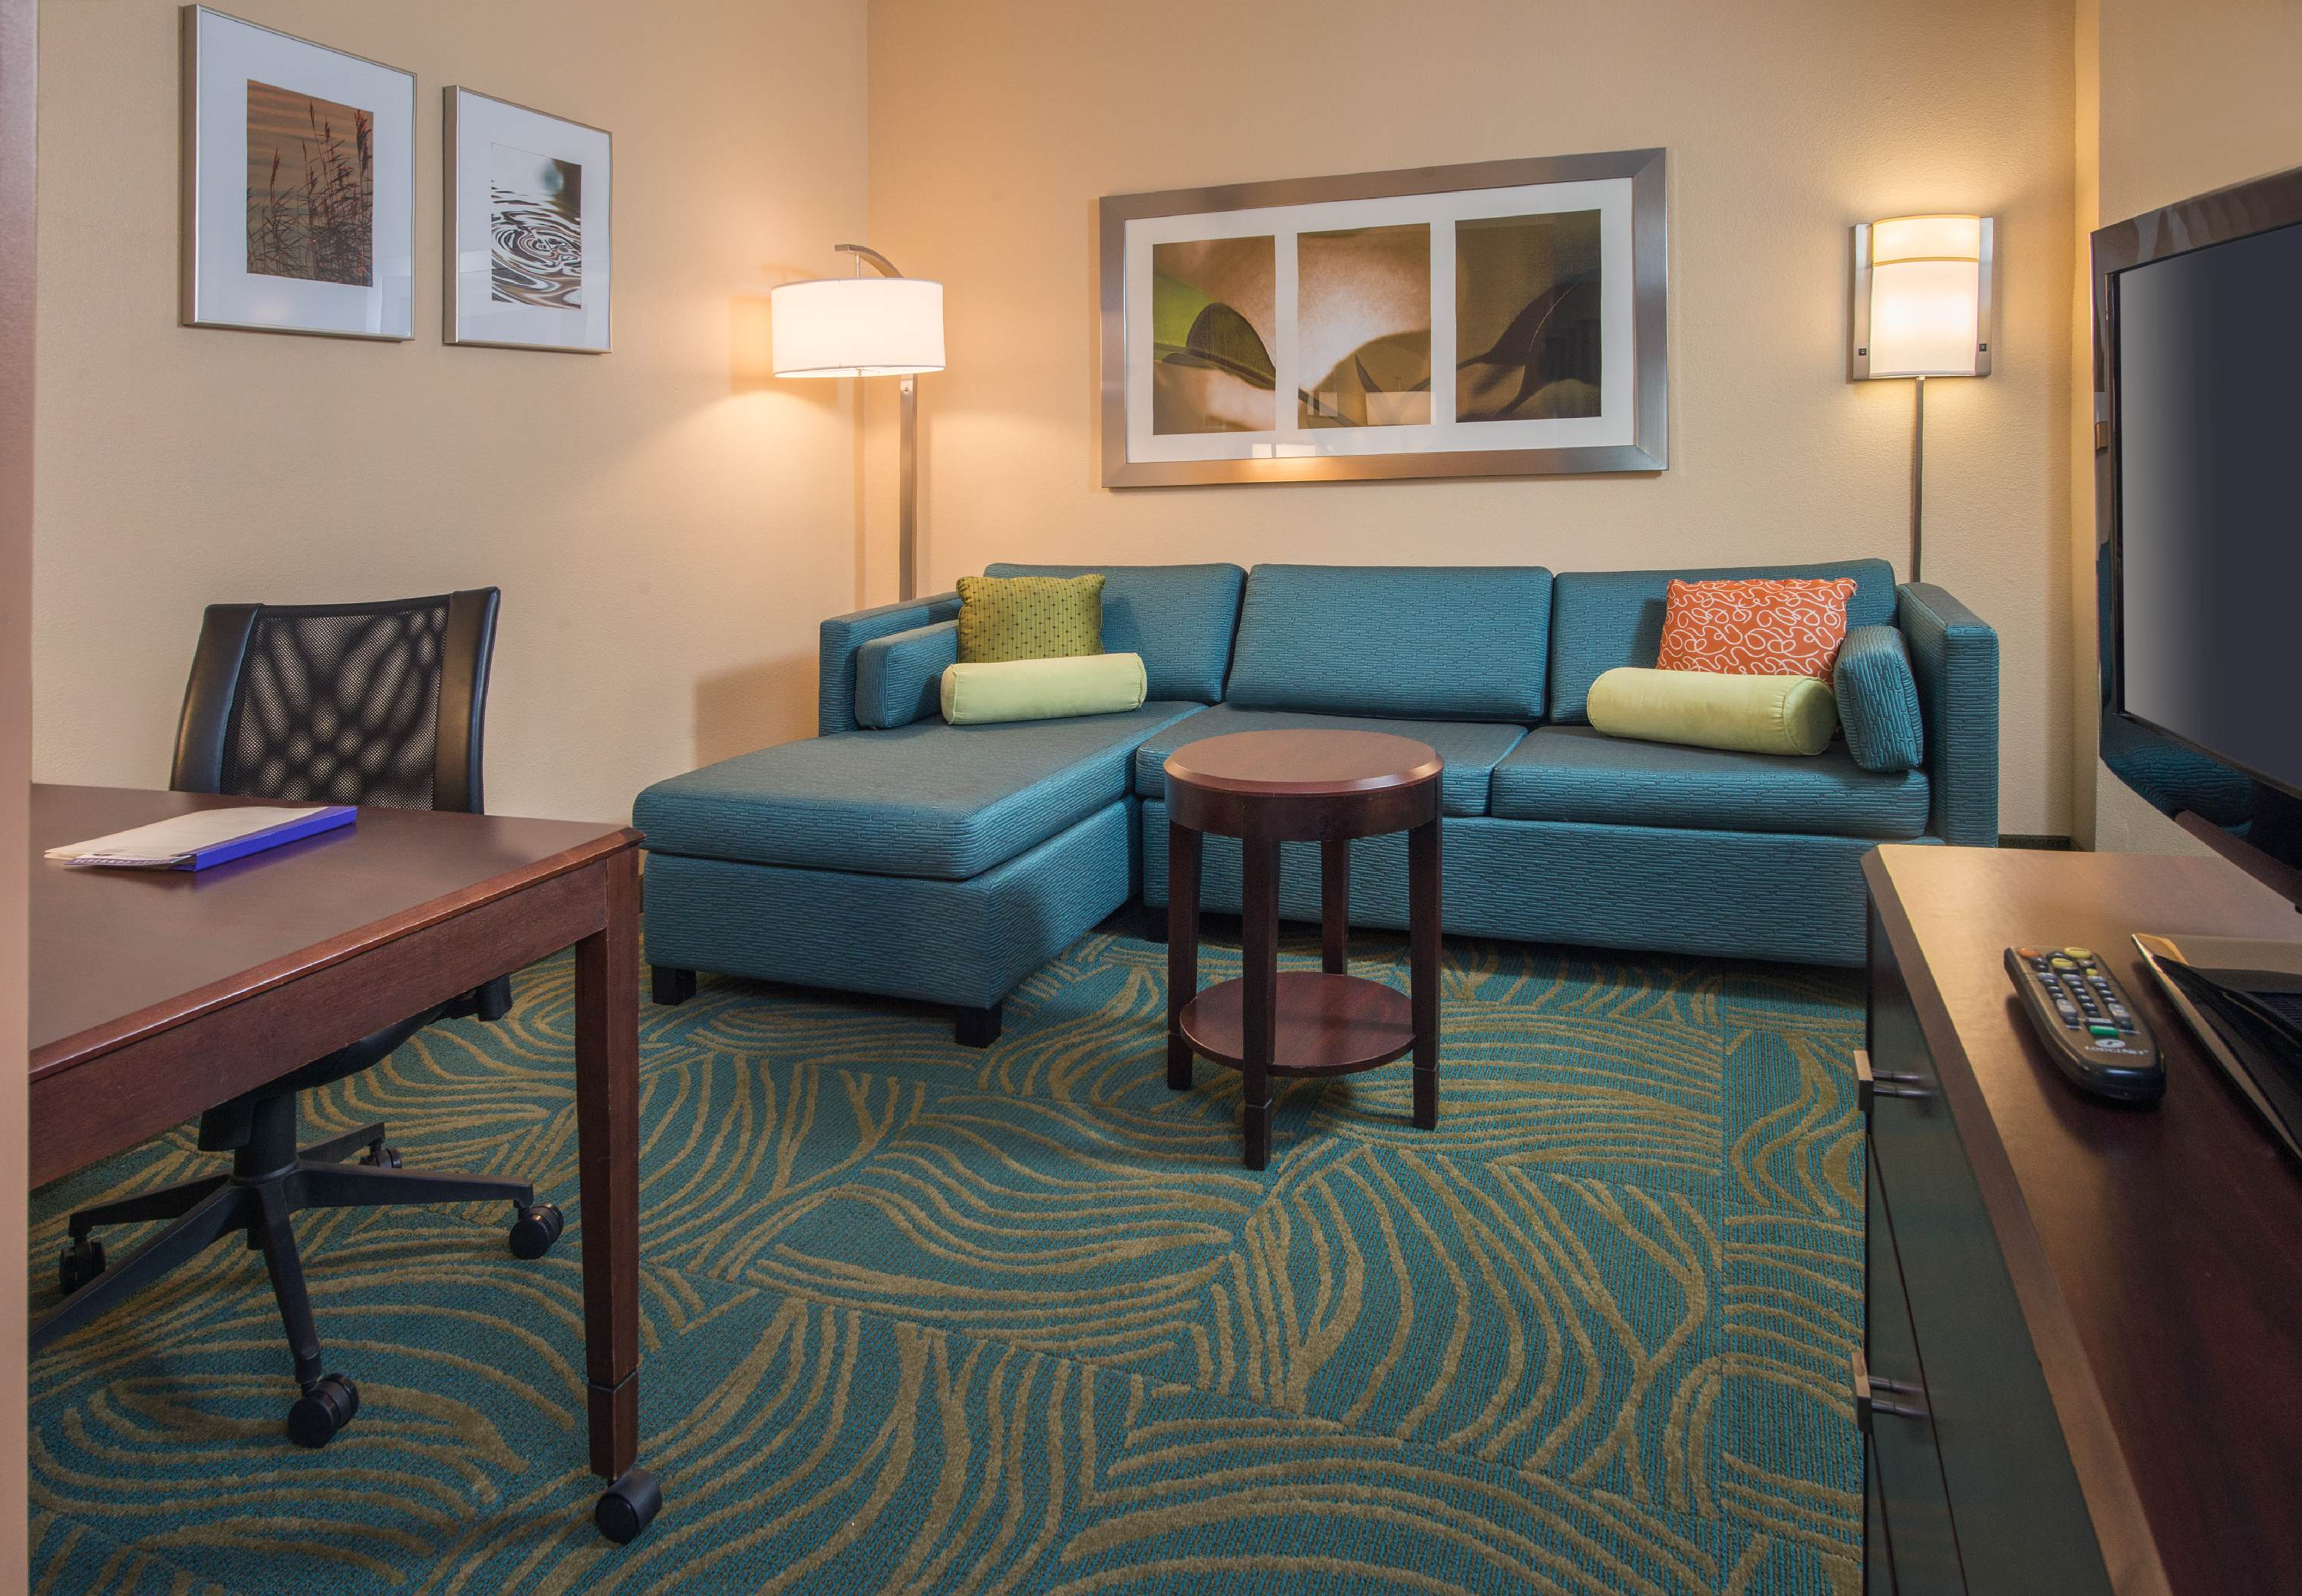 SpringHill Suites by Marriott Edgewood Aberdeen image 5